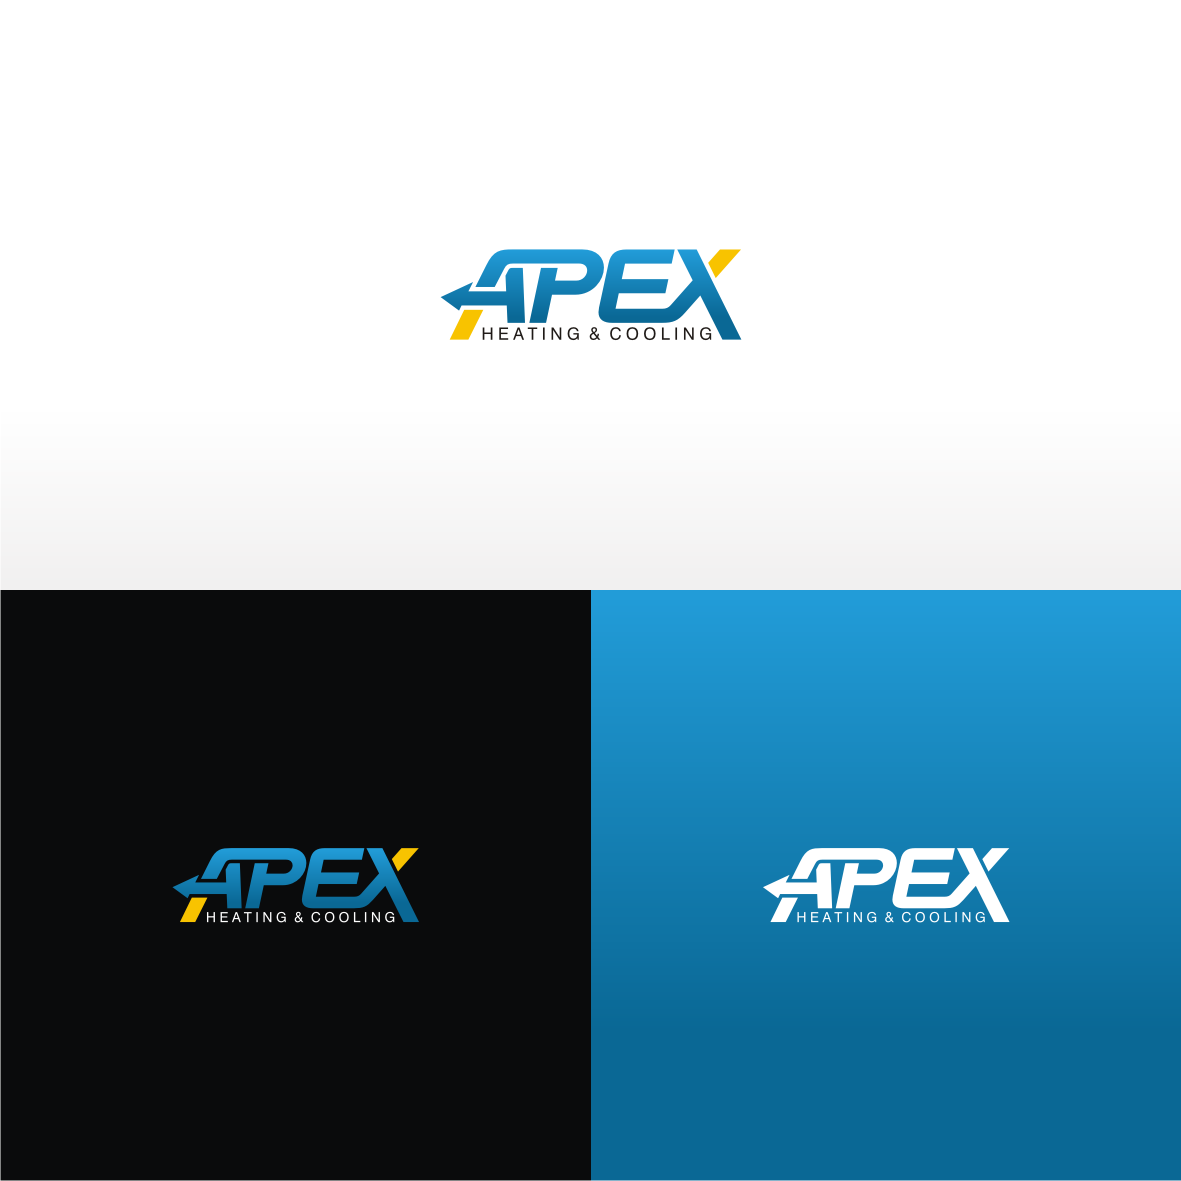 Apex Heating & Cooling needs a sharp new logo